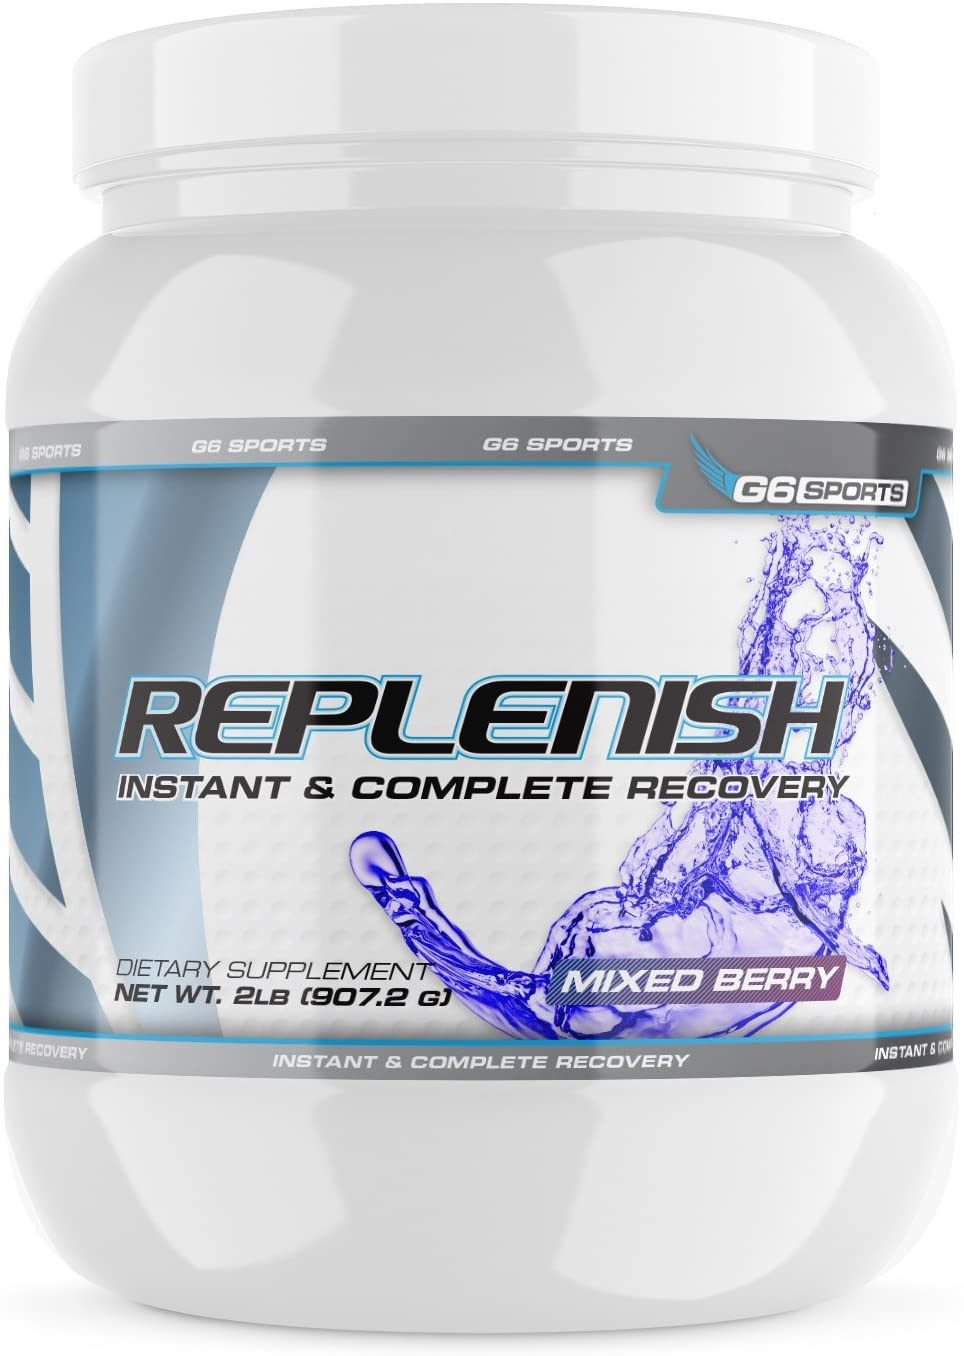 G6 Sports Nutrition Replenish Instant & Complete Recovery (Post Workout Formula, 11g of BCAAs & EAAs, 20g Whey Protein, 1000mg Creatine MagnaPower, Zero Refined Sugars) – 2lb Jar – Mixed Berry